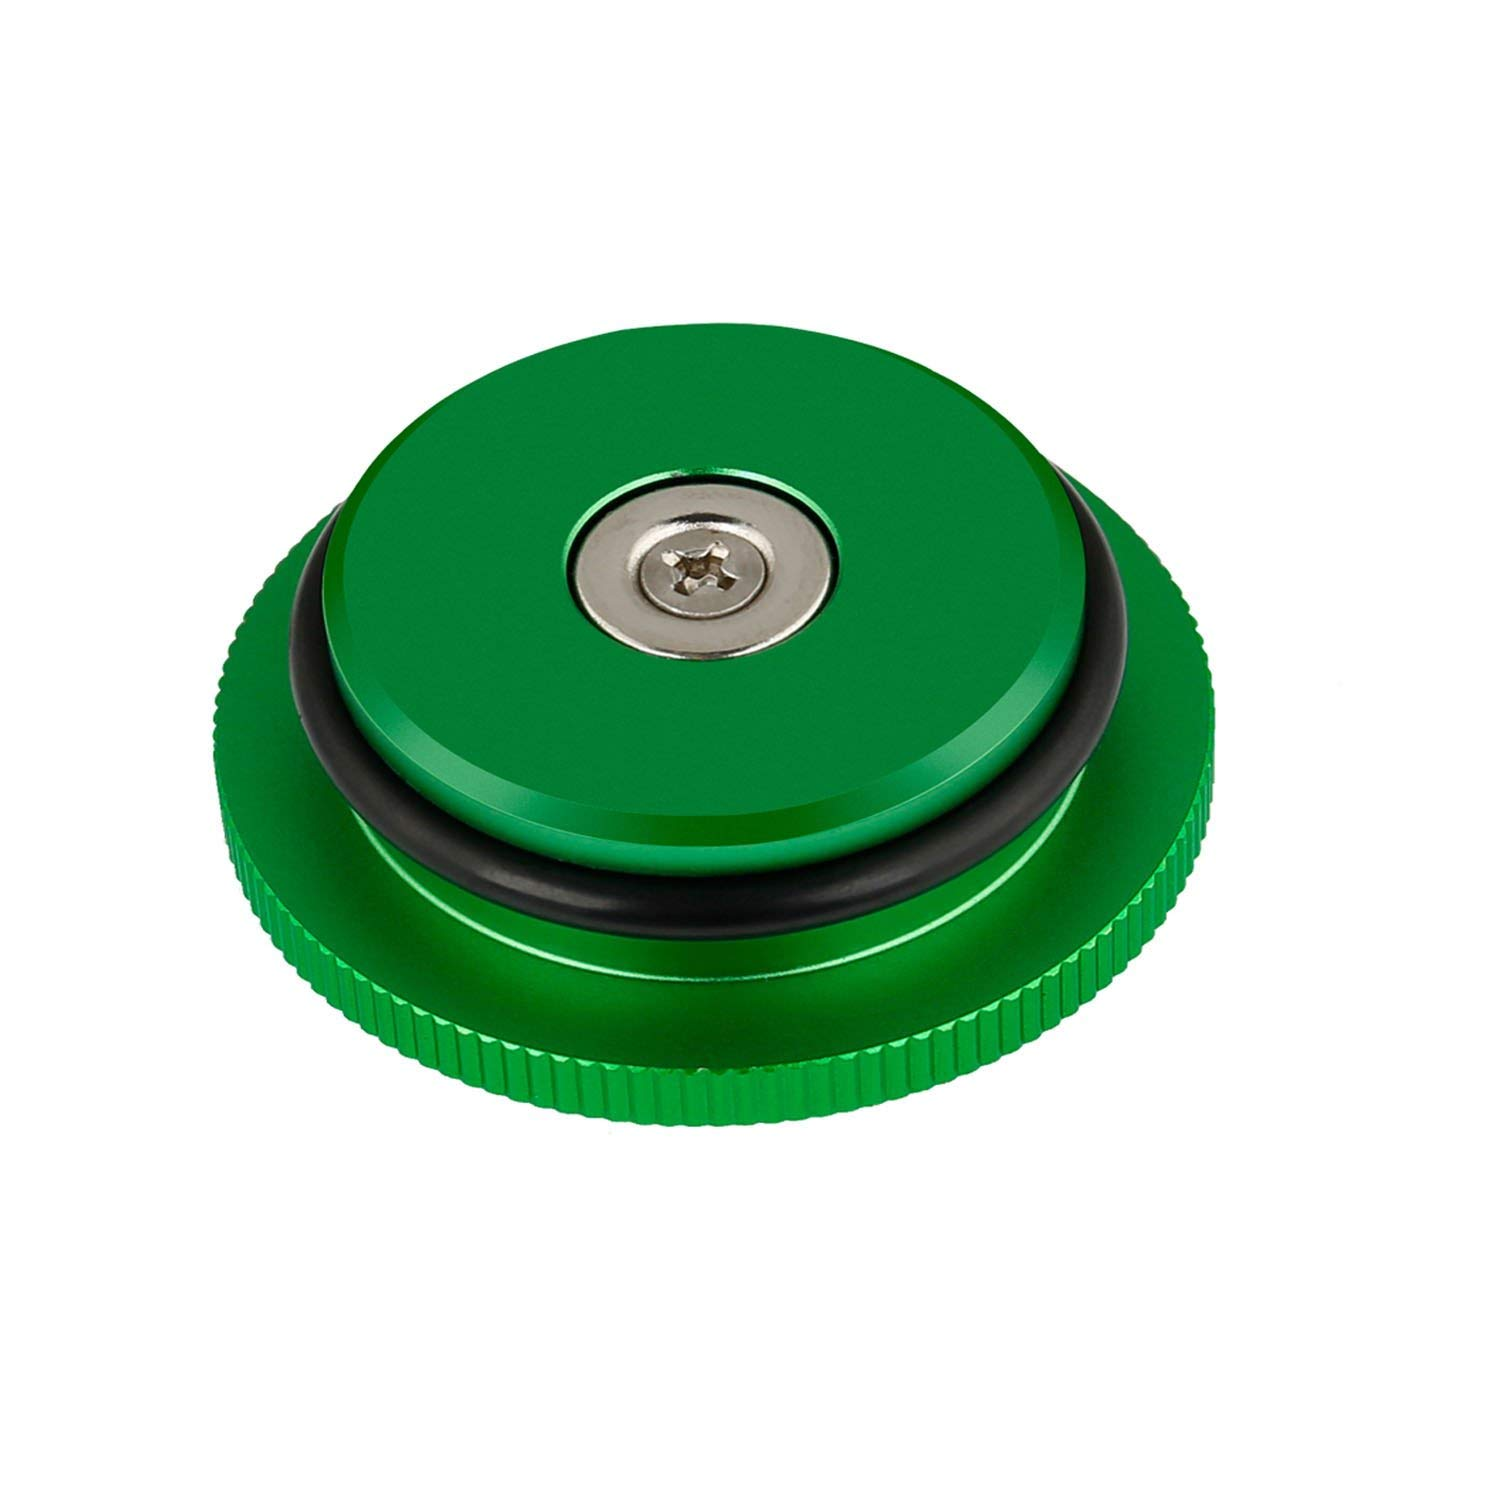 for Dodge Ram Auto Quick use Parts ELifeApply Green Billet Aluminum Magnetic Diesel Fuel Cap GREEN, New packaging 2013-2017 Diesel Fuel Cap